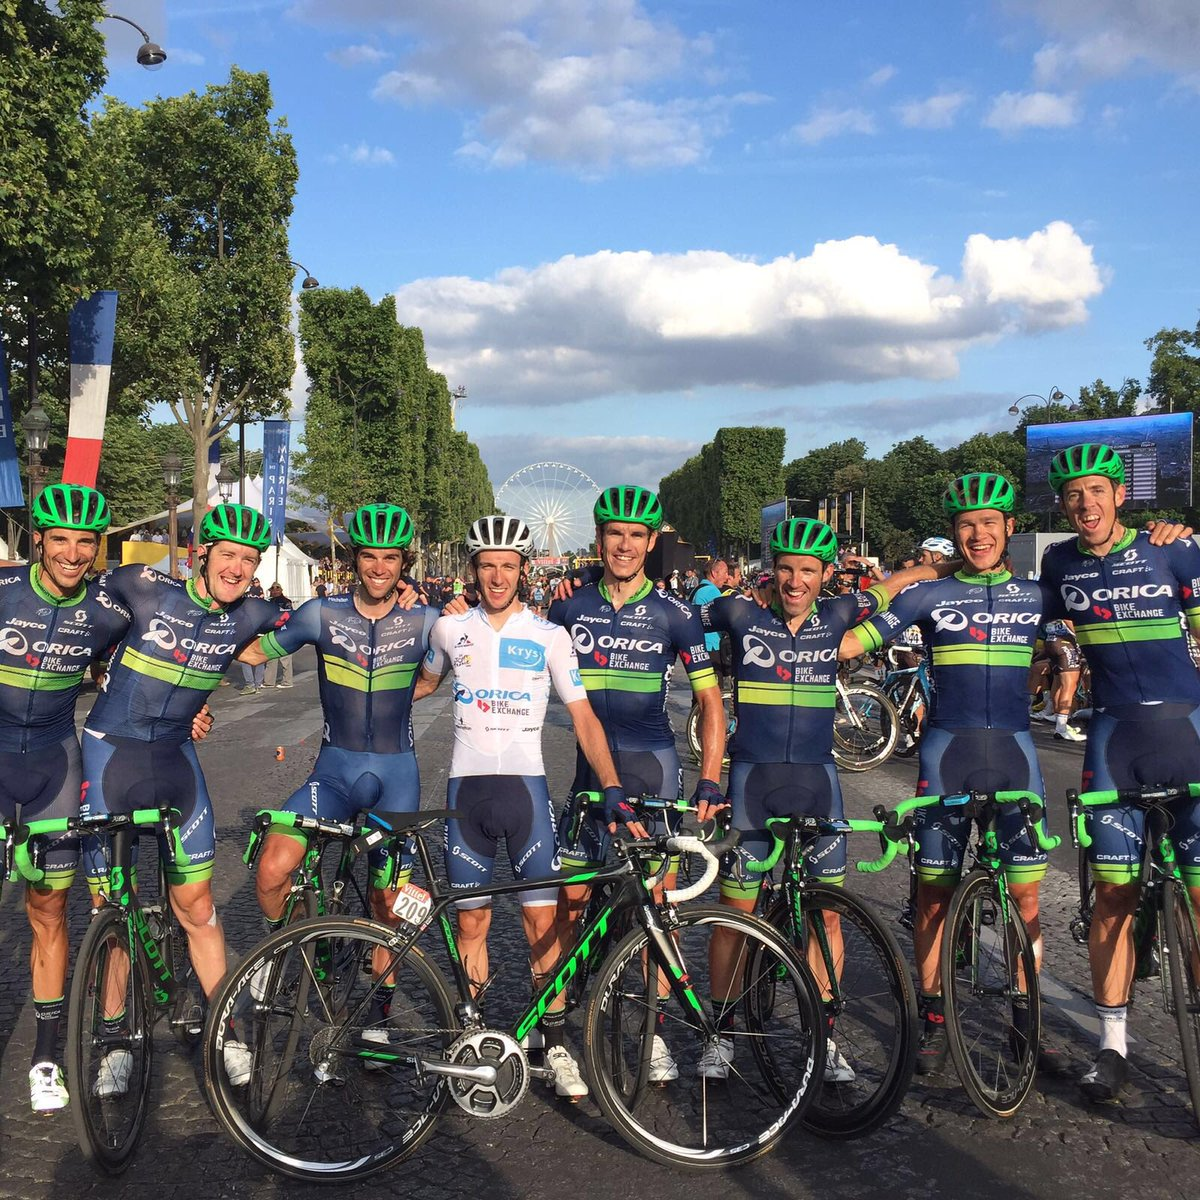 We made it! What an amazing #TDF2016 . Thanks @ORICA_BE staff and riders and fans for another great lap of France https://t.co/M7iYz2T1pW